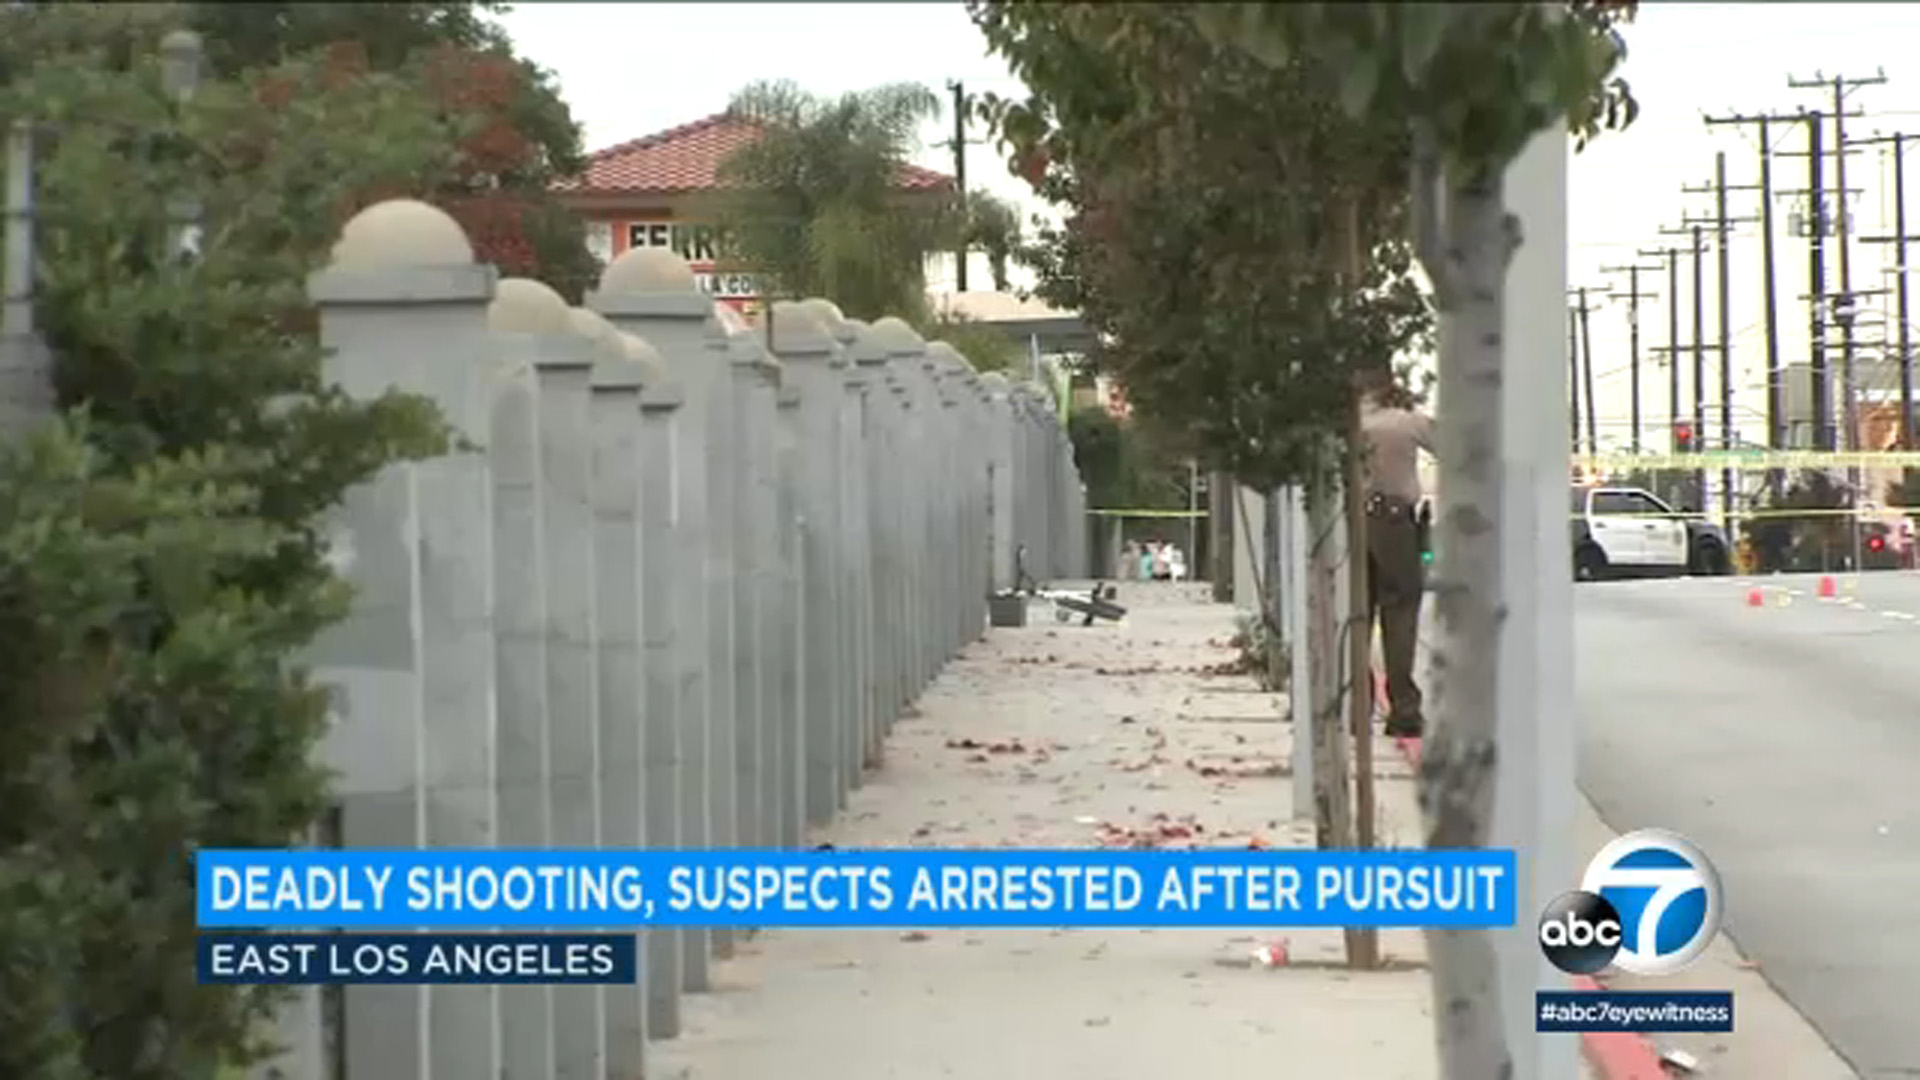 The scene of an East Los Angeles shooting that prompted a pursuit on Dec. 14, 2018.